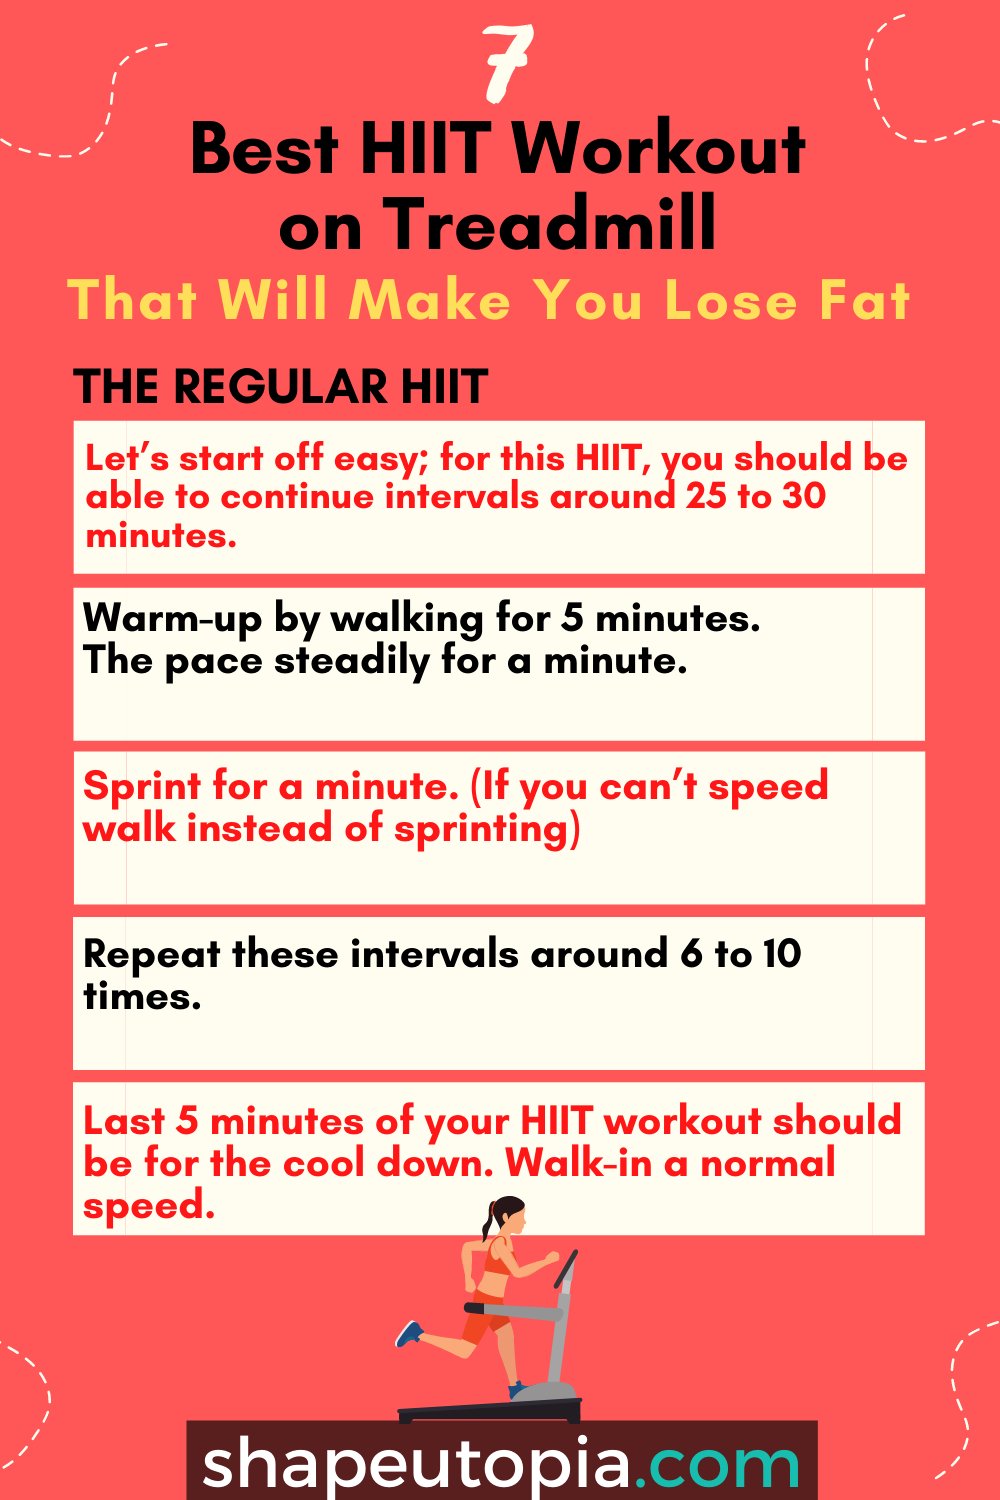 regular 7 Best HIIT Workout on Treadmill That Will Make You Lose Fat